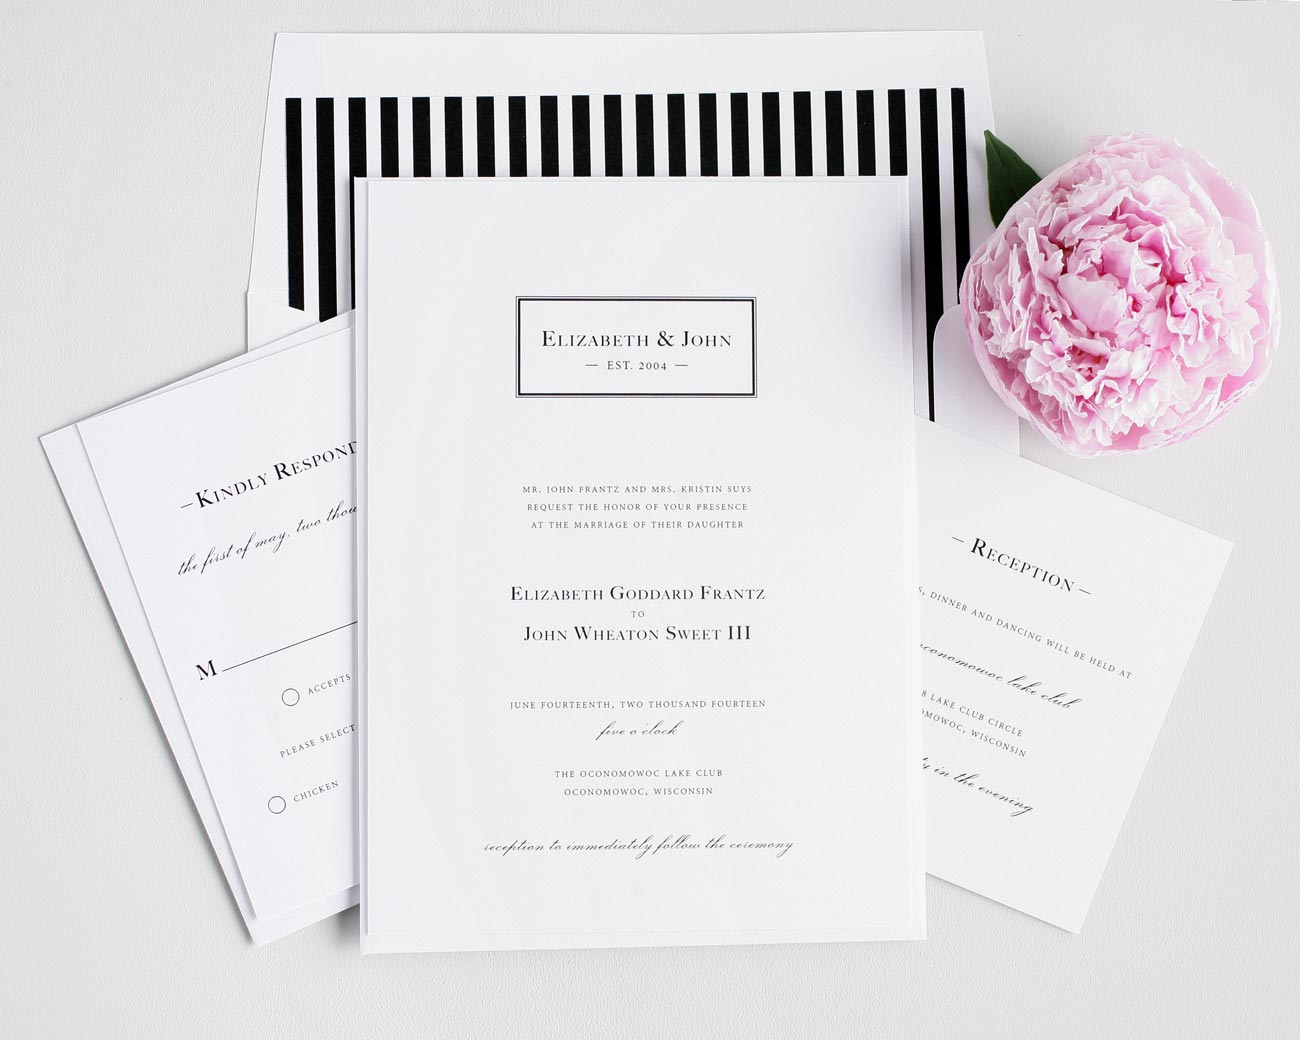 black and white striped wedding invitations with a monogram